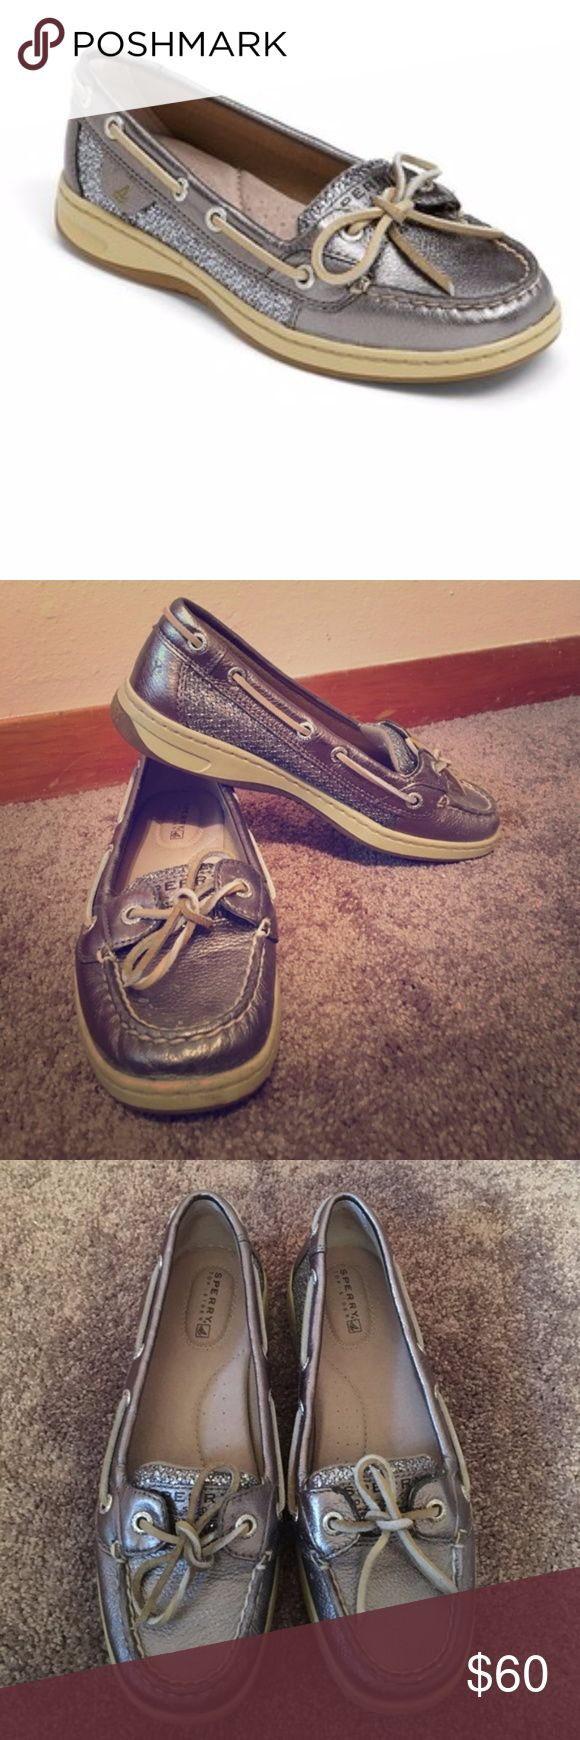 CLEARANCE! Sperry Top Sider Metallic Angelfish WOrn only once. In excellent condition. Not wide fit, medium fit. Sperry Shoes Flats & Loafers